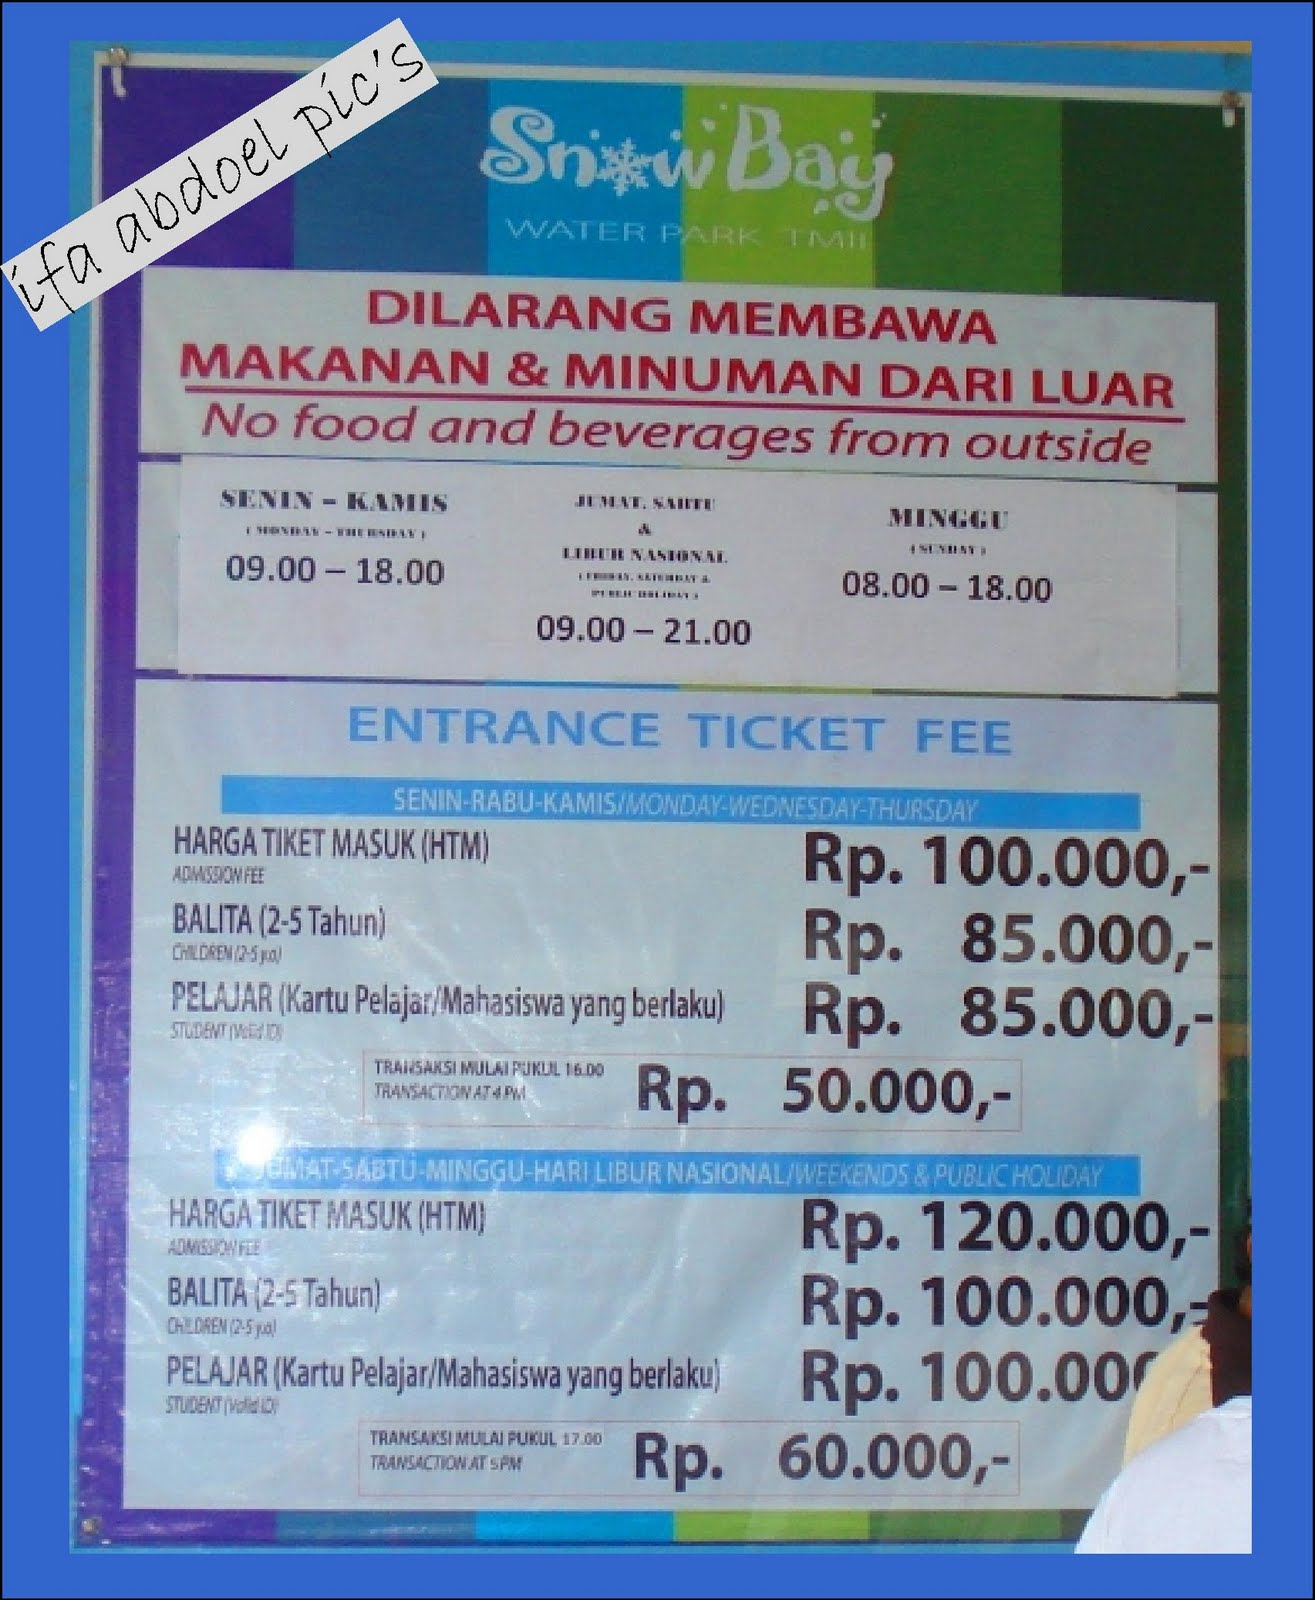 Harga tiket Snow Bay Waterpark.